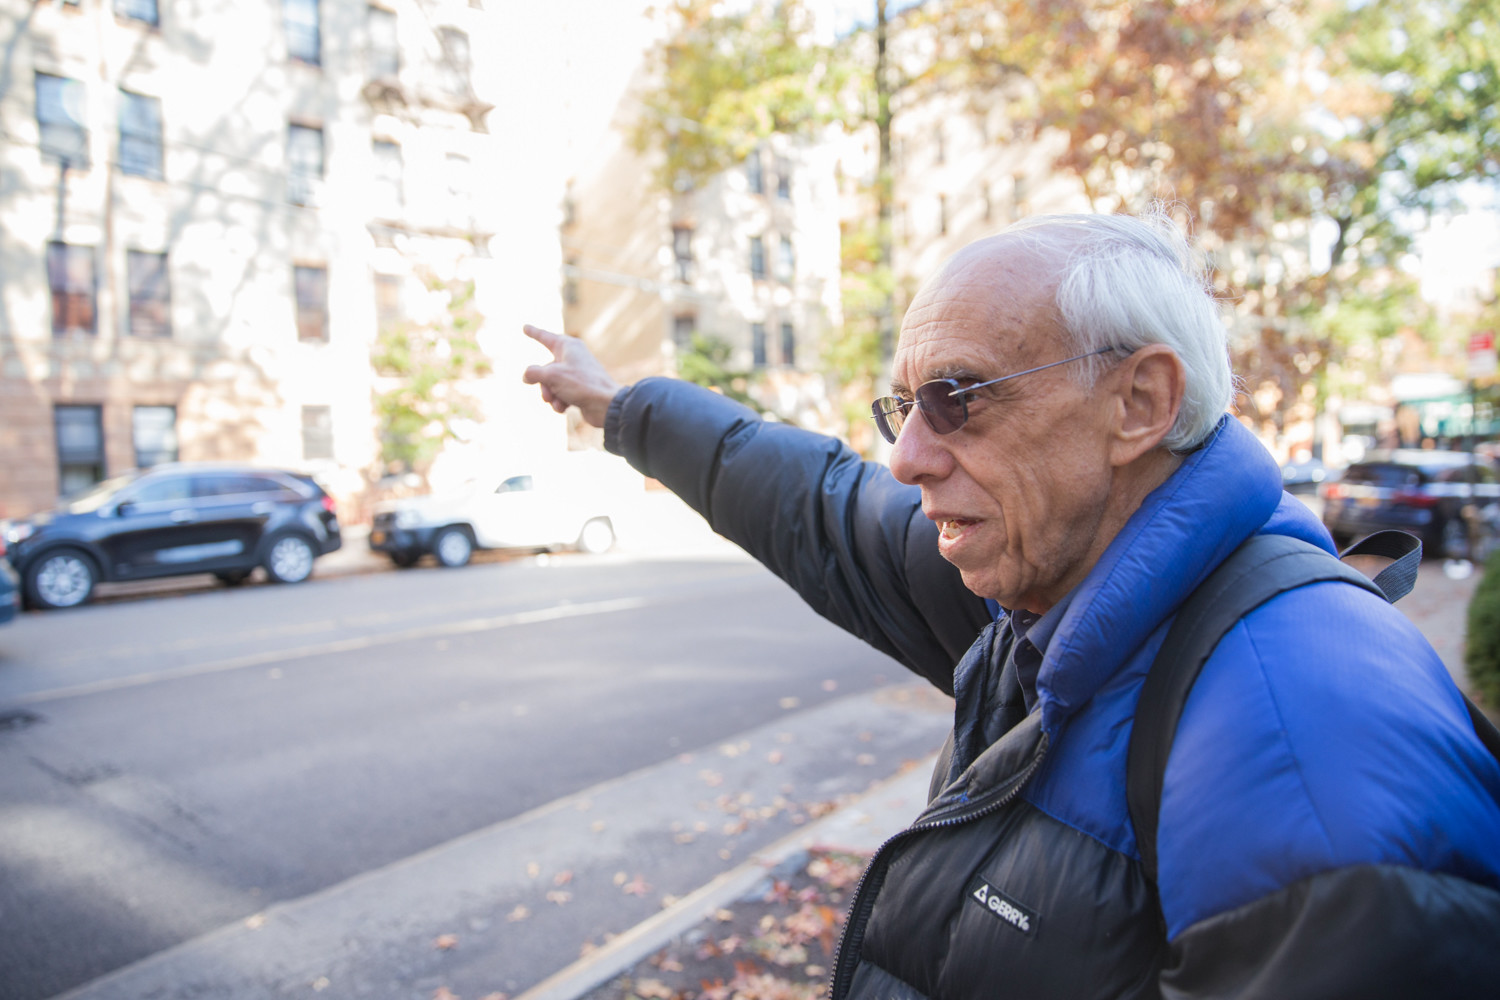 Nat Solomon, who along with other Van Cortlandt Village members are pushing for safety improvements at Stevenson Place and Sedgwick Avenue, recently organized a meeting where he invited Bronx transportation commissioner Nivardo Lopez to see the problem area first-hand.